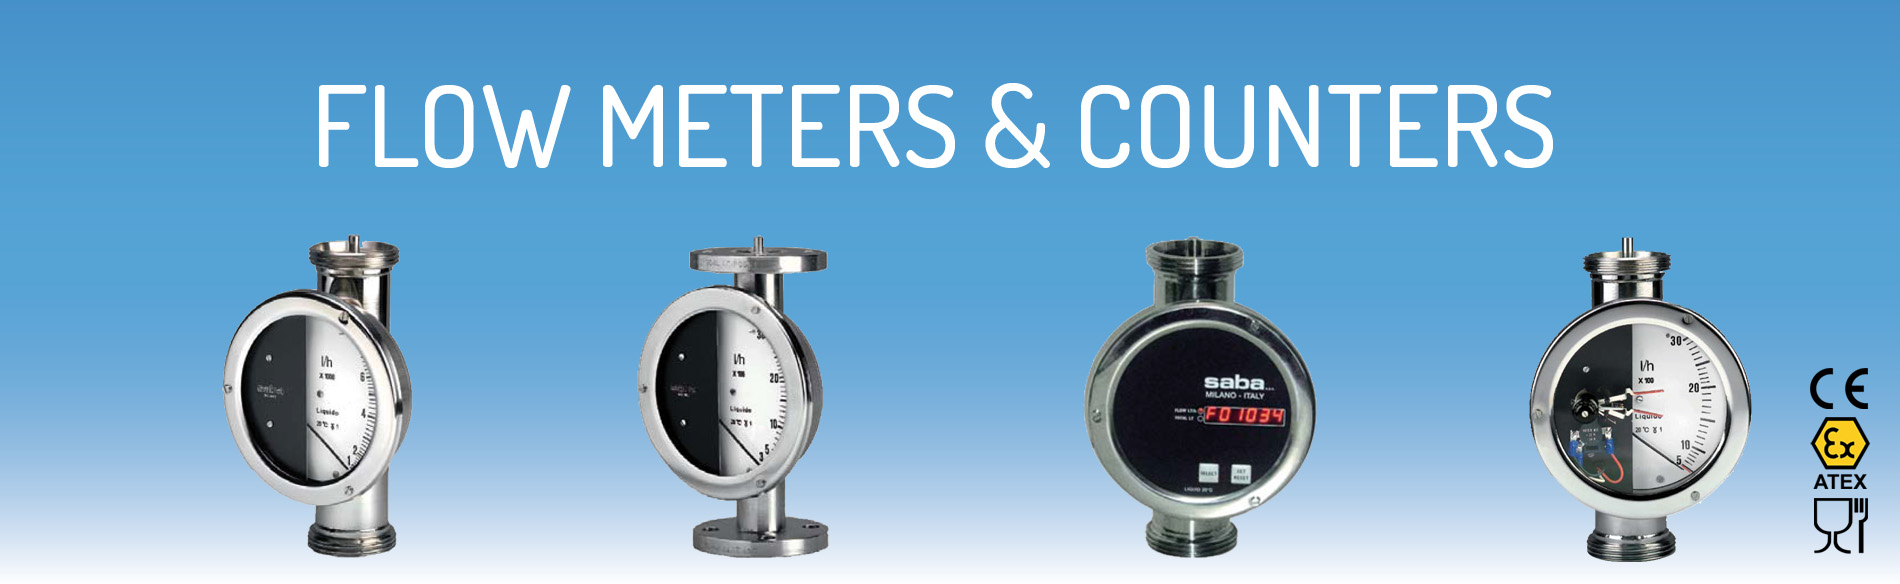 Flow meters & counters